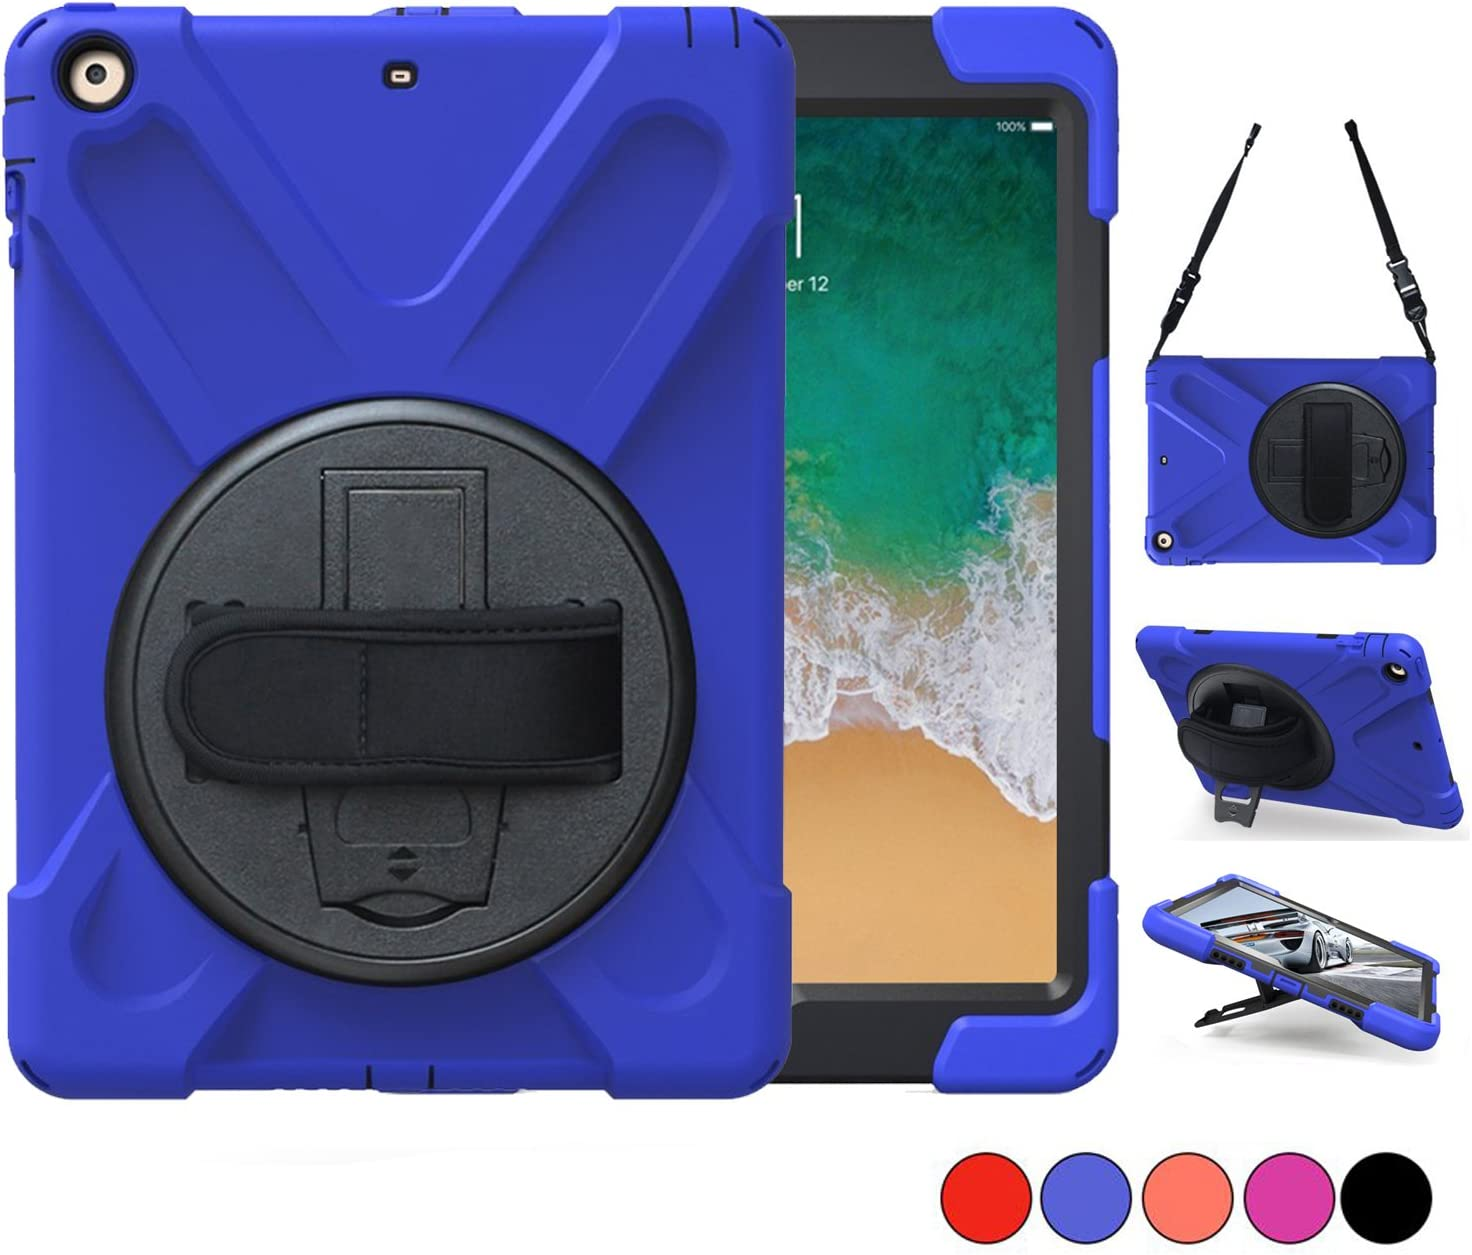 iPad Air 2 Case, TSQ Shockproof Defender Bumper Plastic Case With 360 Degree Swivel Stand, Handle Hand Grip & Shoulder Strap, For Apple Tablet Air 2 Gen Cover Skin For Kids Girls Boys A1566 A1567 Blue